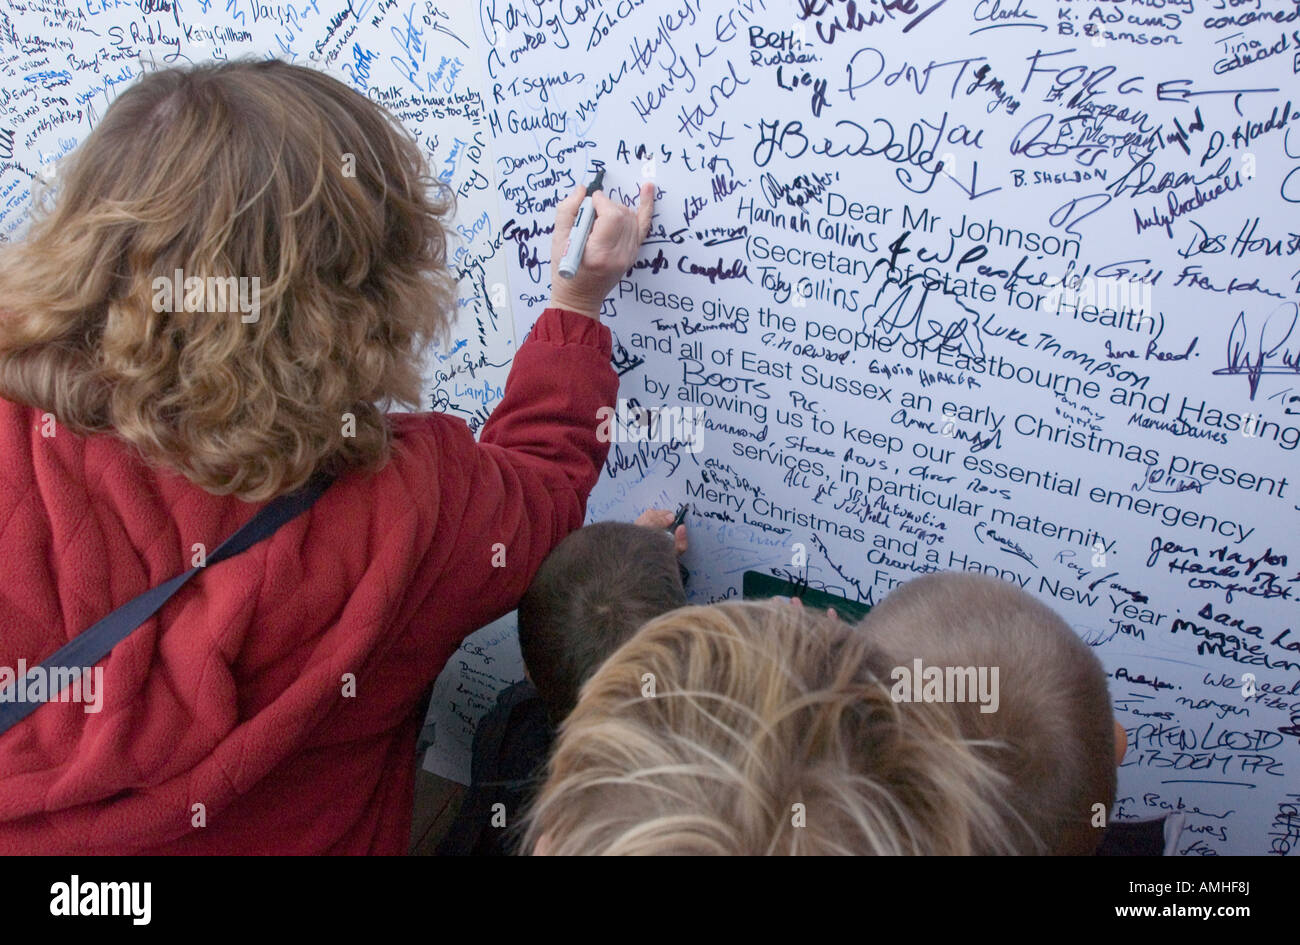 Signing a Christmas card for Alan Johnson, Secretary of State for Health during a rally against downgrading maternity - Stock Image